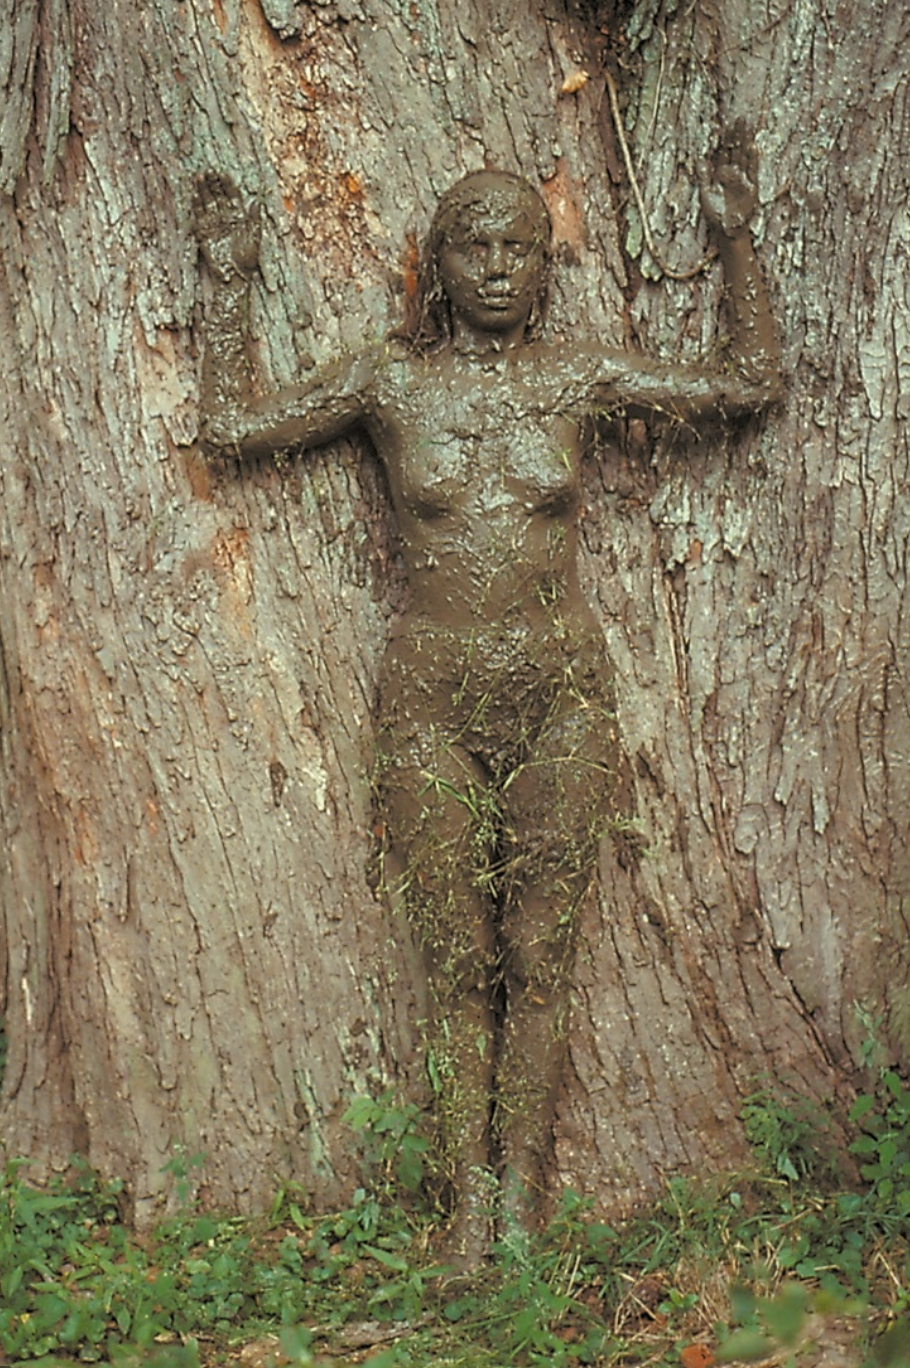 Tree of Life is a performance by Ana Mendieta who covers her body with mud and stands against a tree.